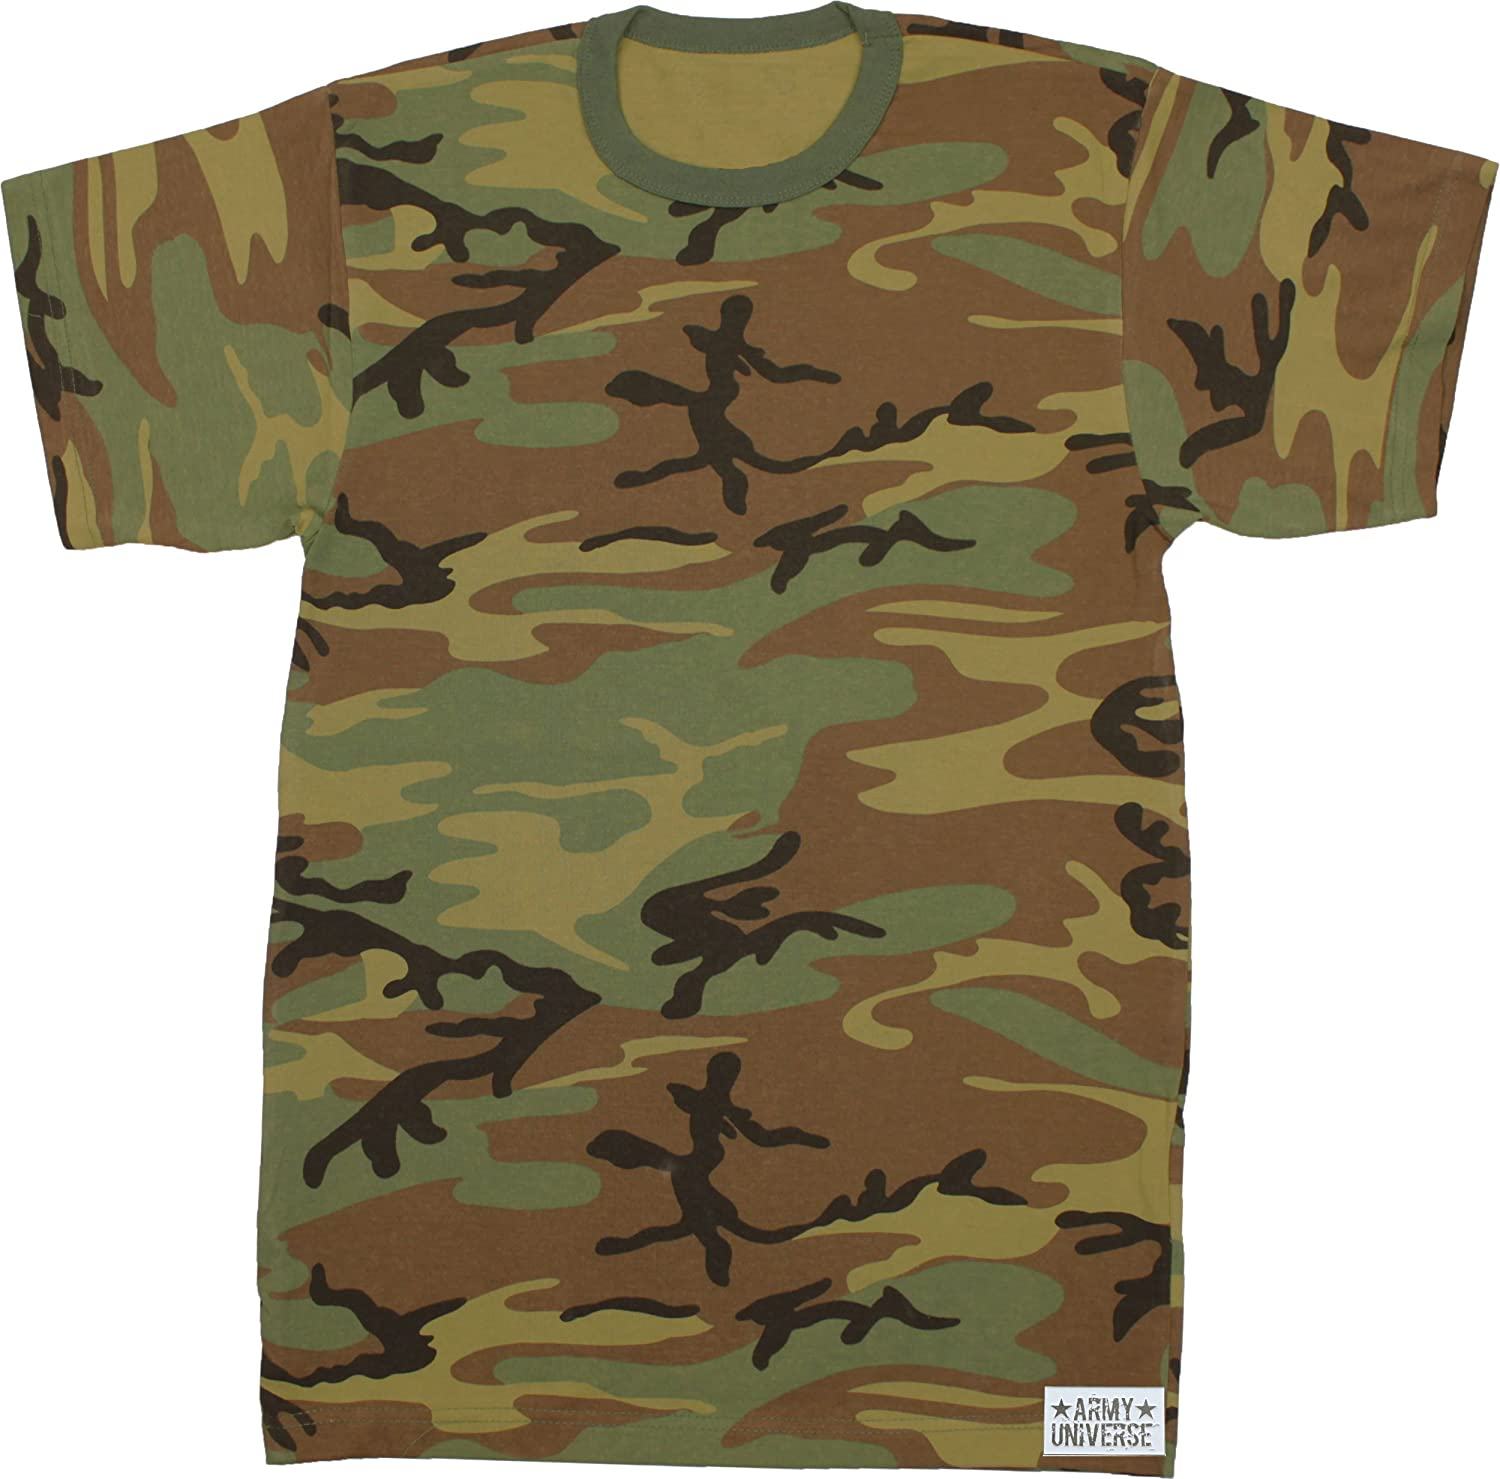 Amazon.com  Military Camouflage T-Shirt Camo Crewneck Tee Short Sleeve Top  with ArmyUniverse Pin  Clothing dbced9ea568